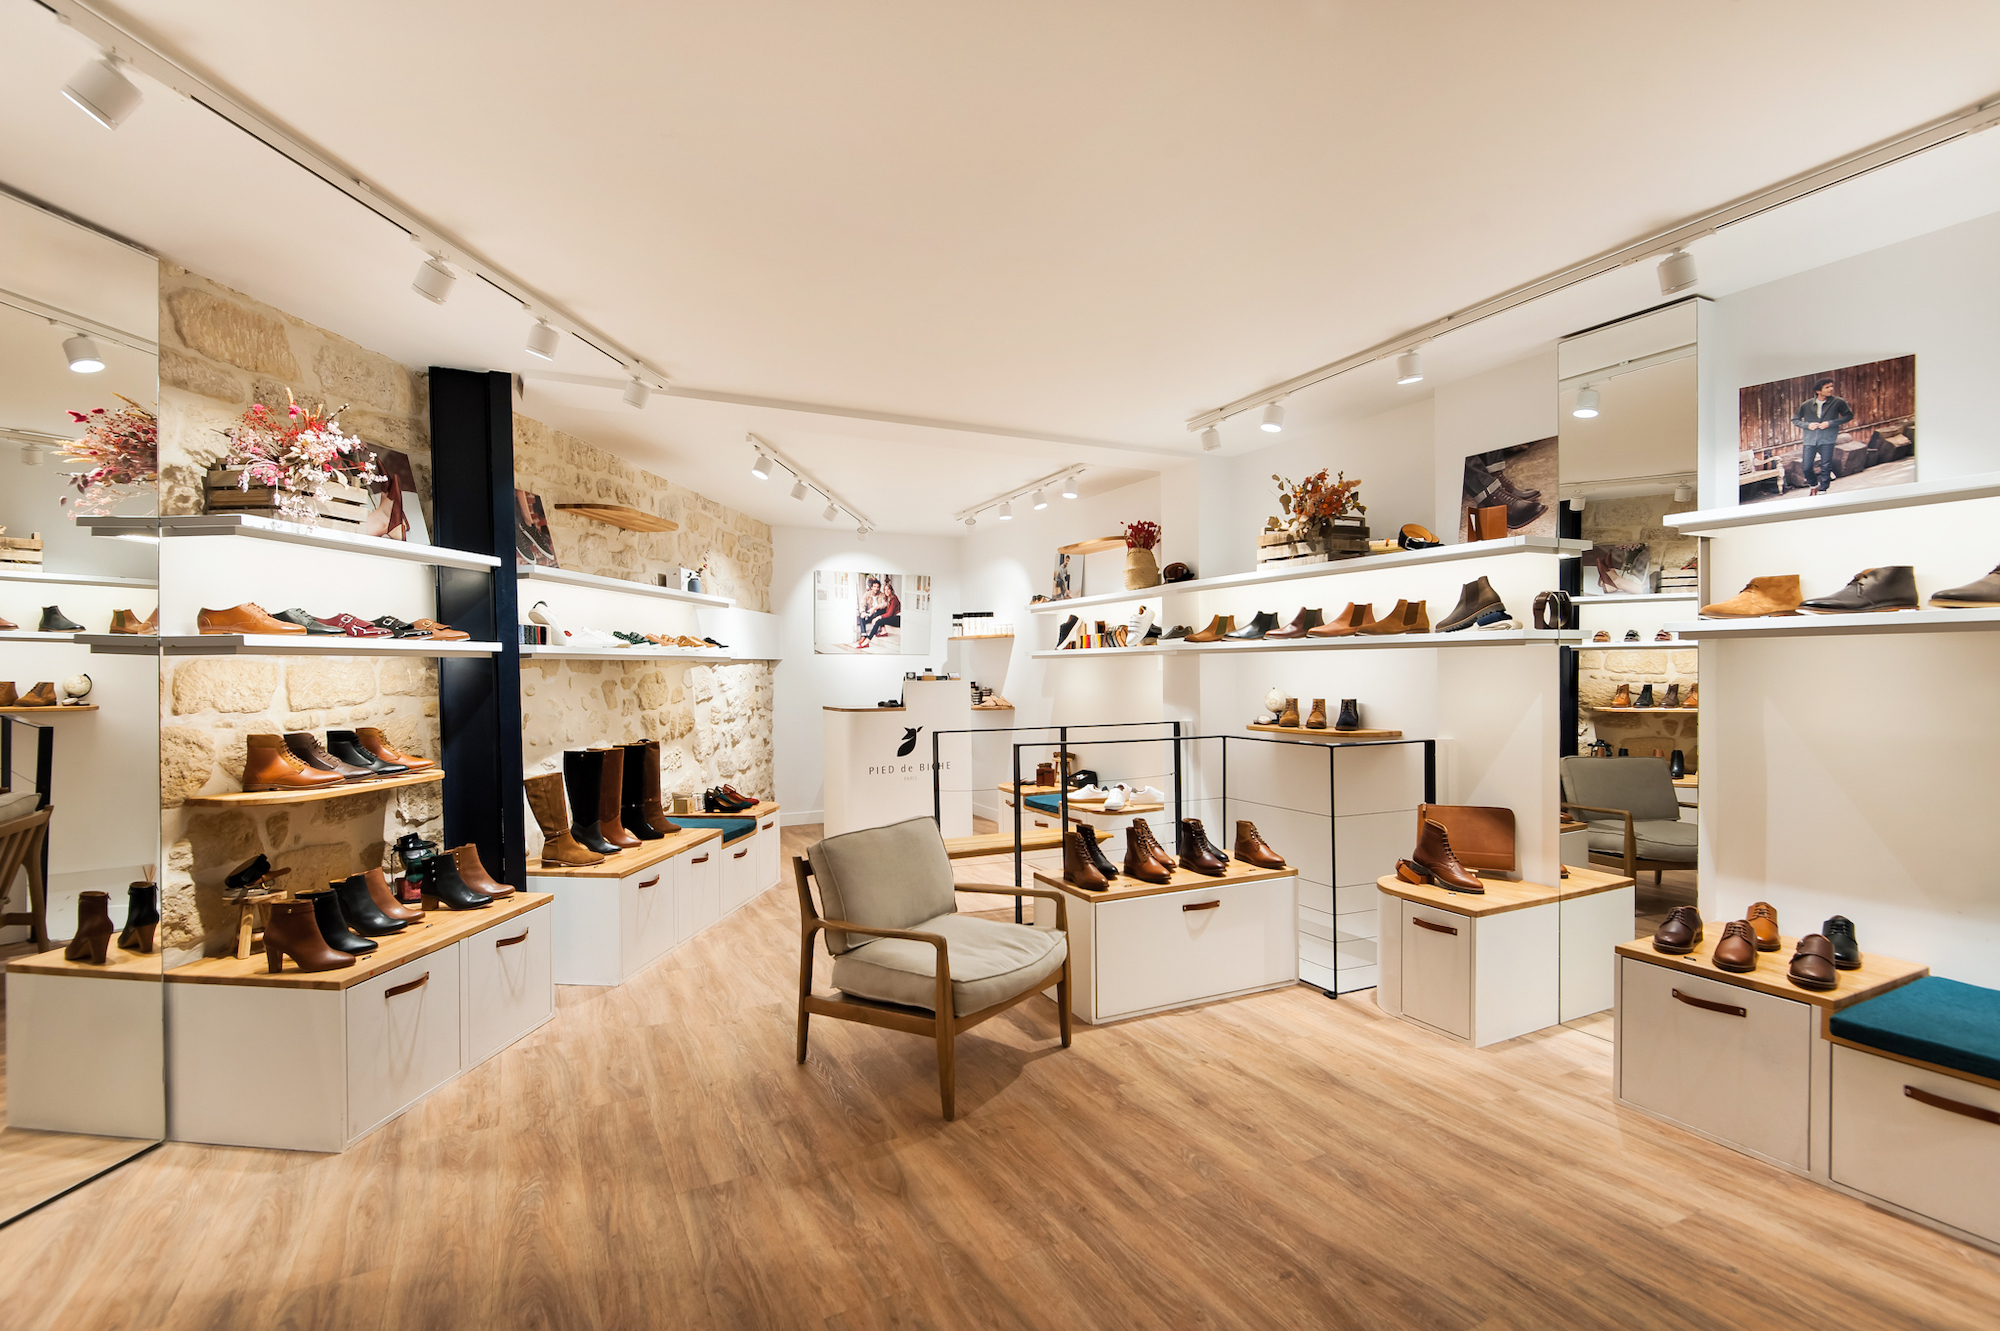 Interior of Pied de Biche shoe shop with wooden floors, in Paris.